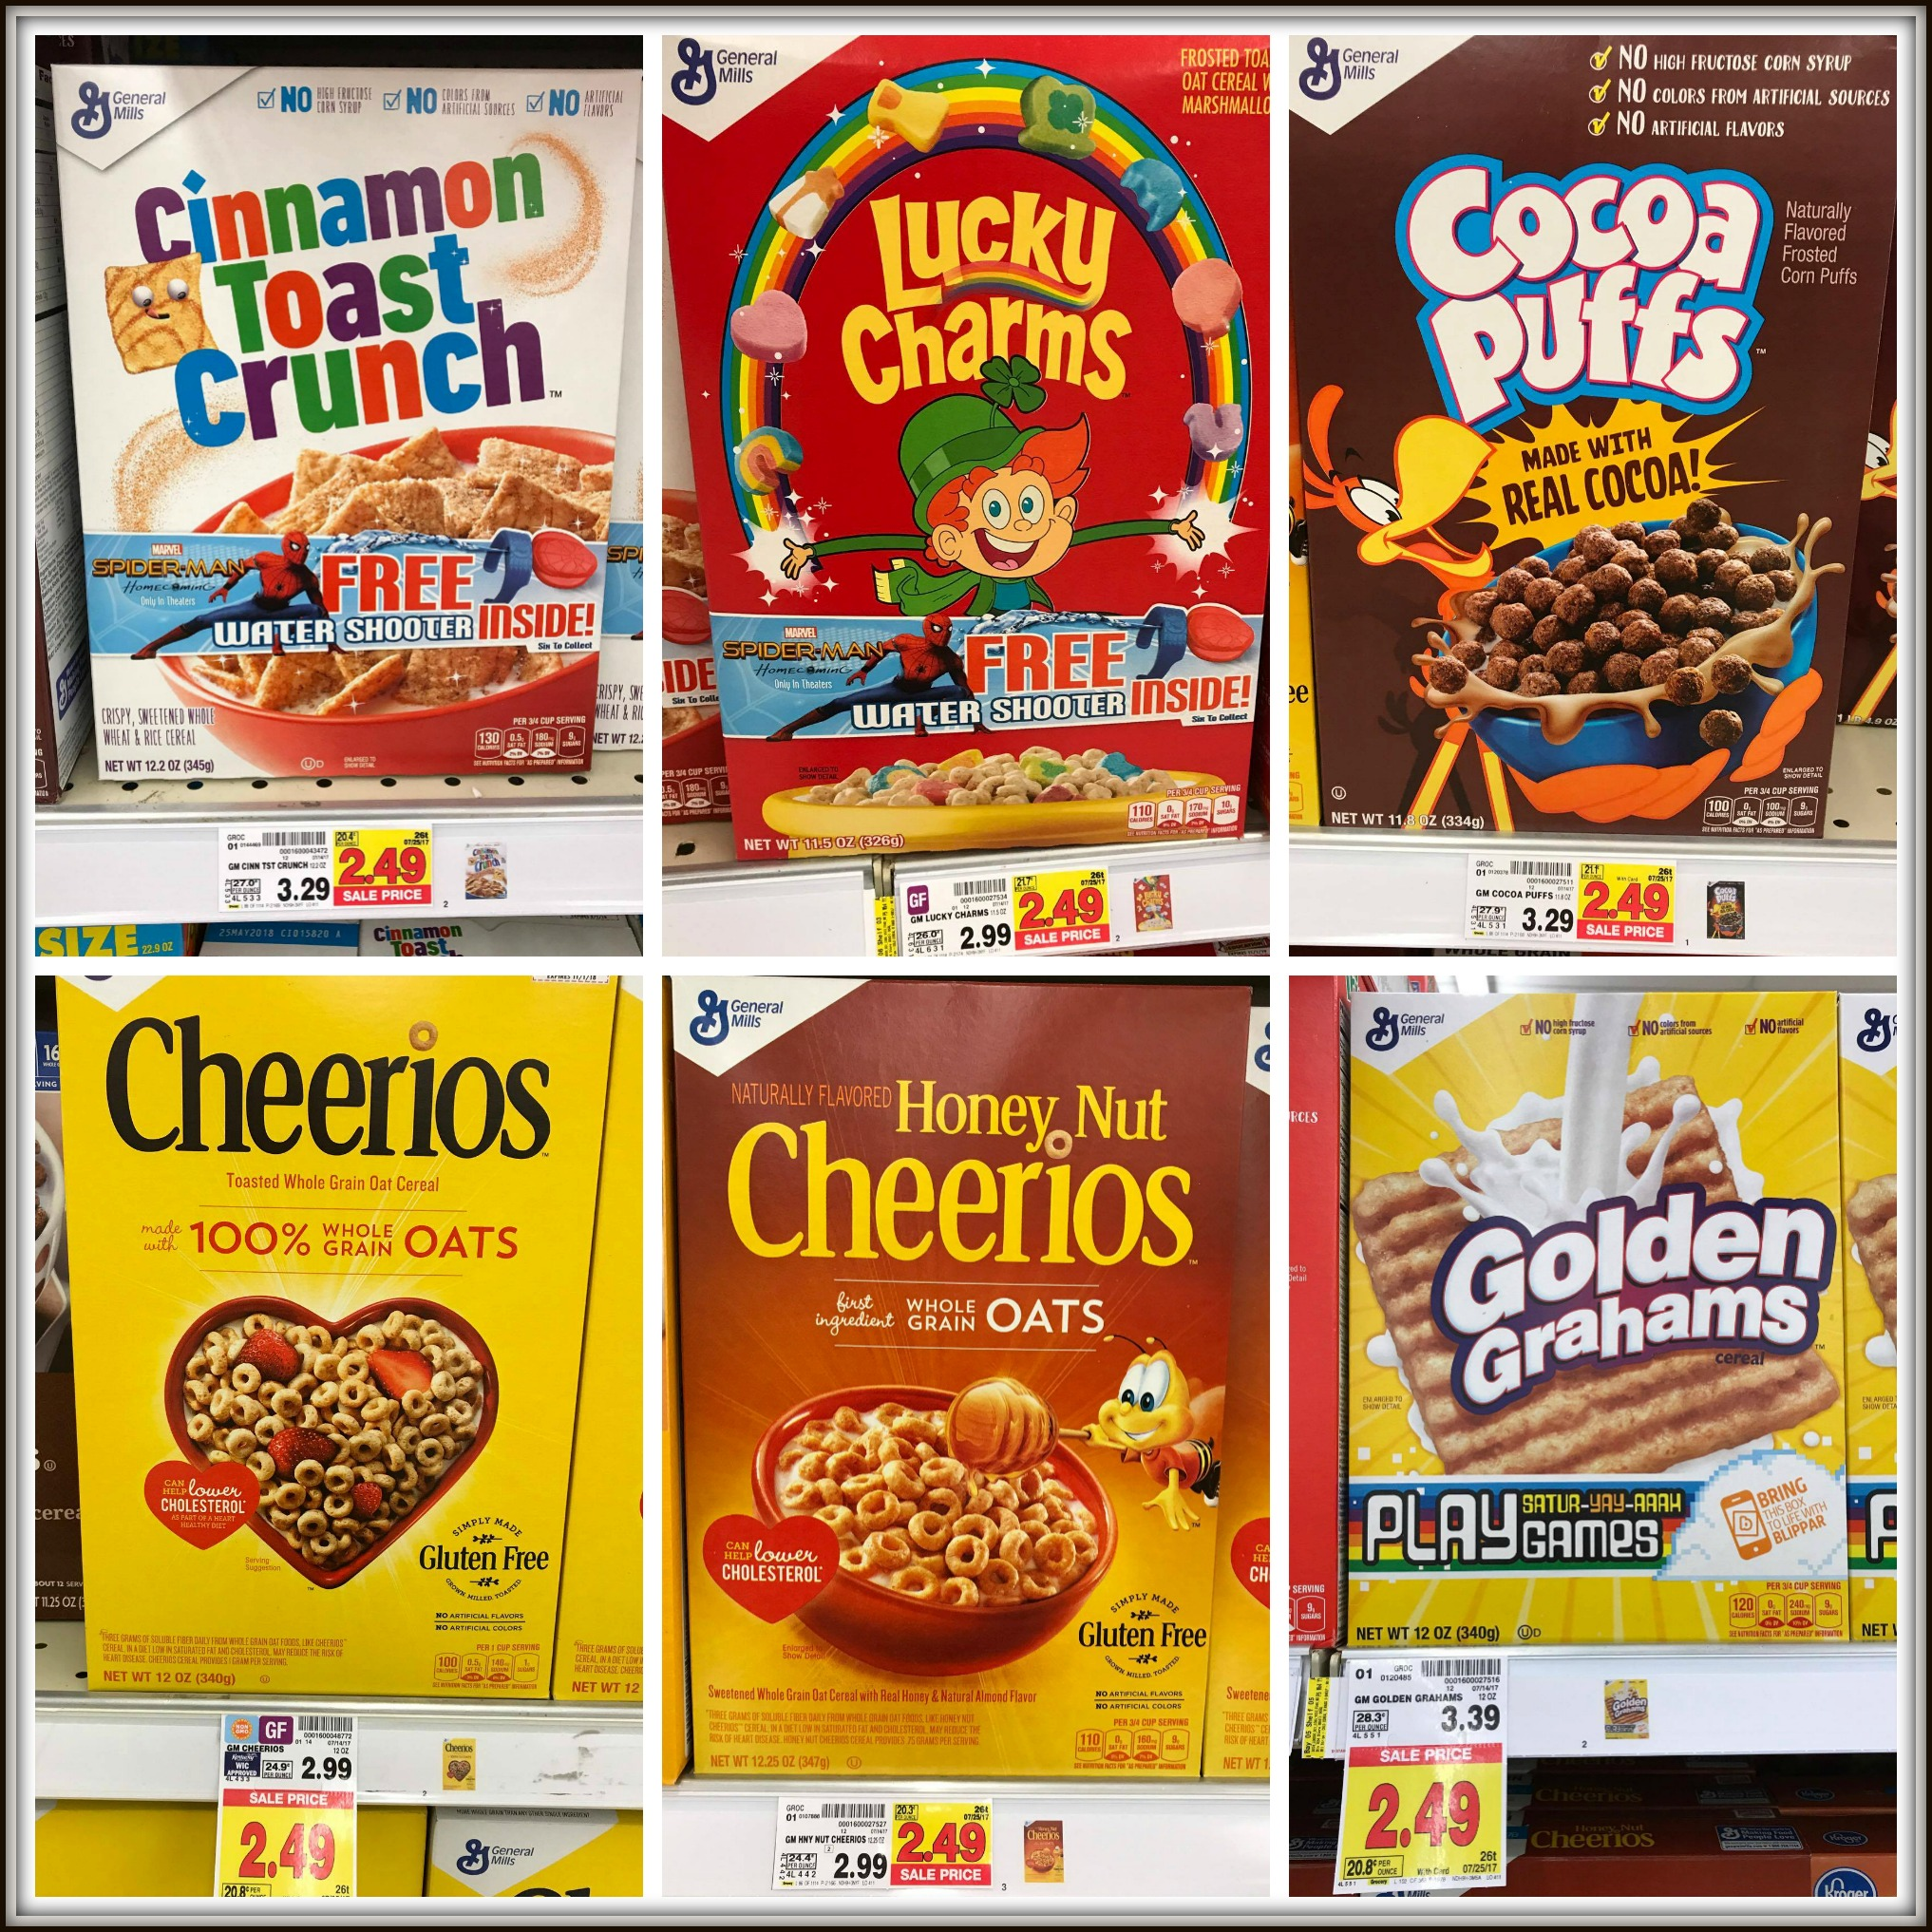 Fiber One Cereal Coupons 2017